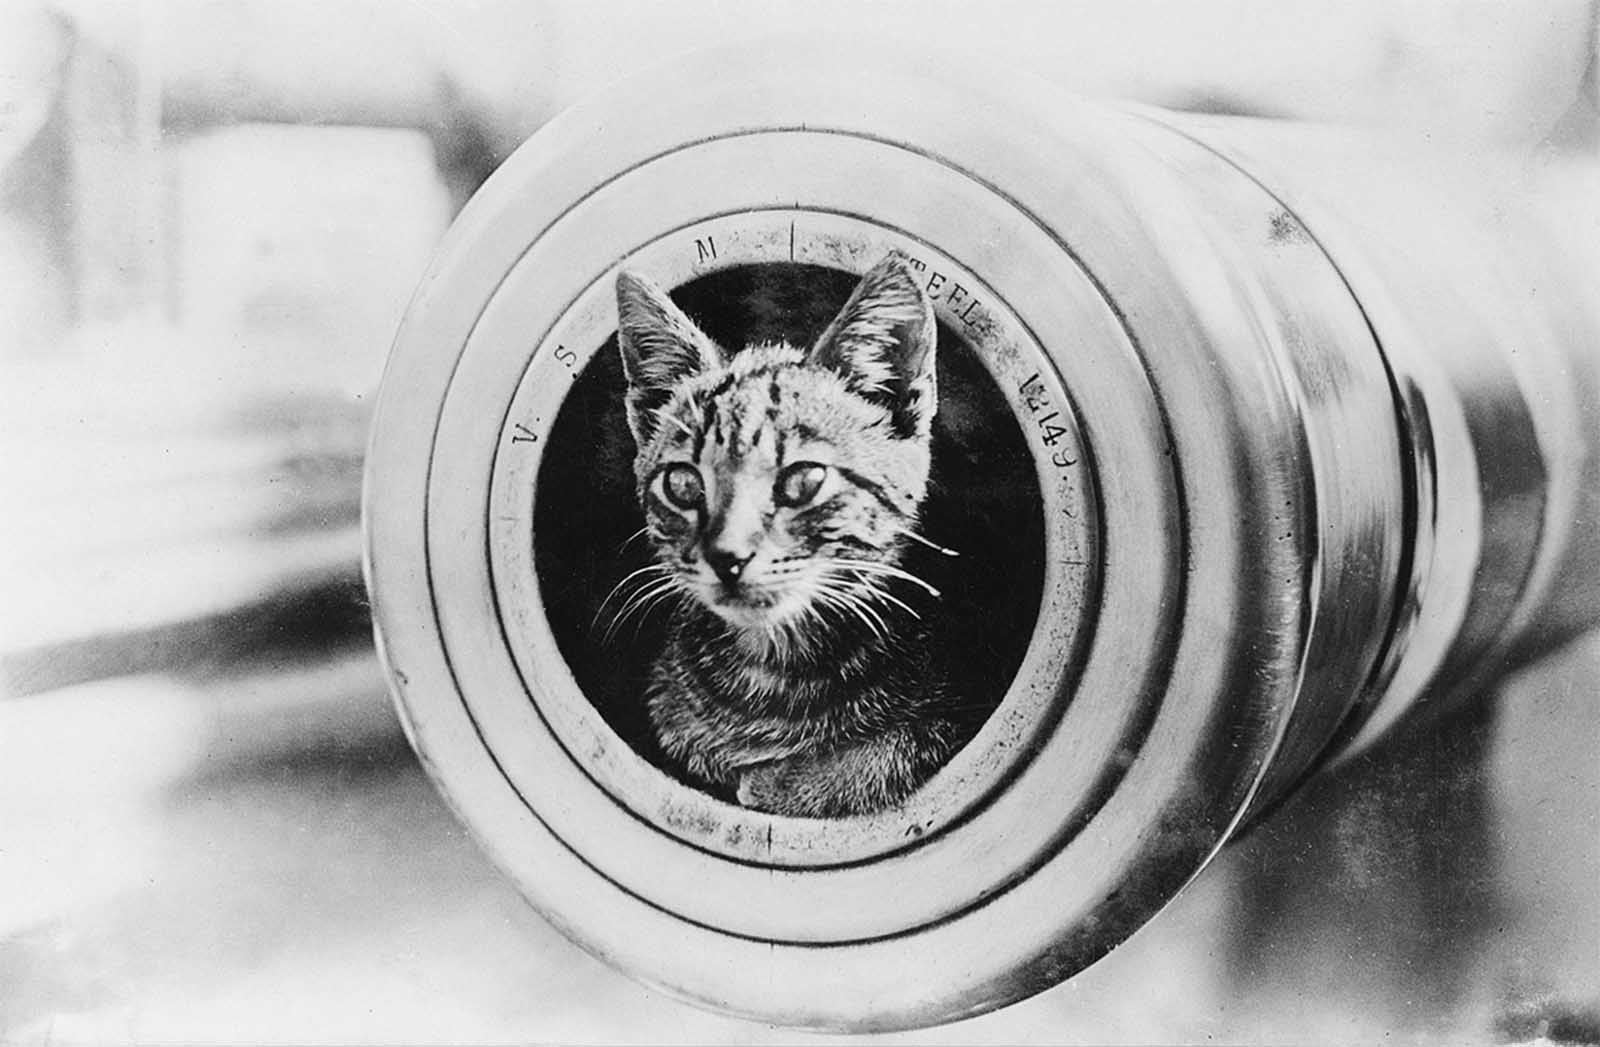 The feline mascot of the light cruiser HMAS Encounter, peering from the muzzle of a 6-inch gun.